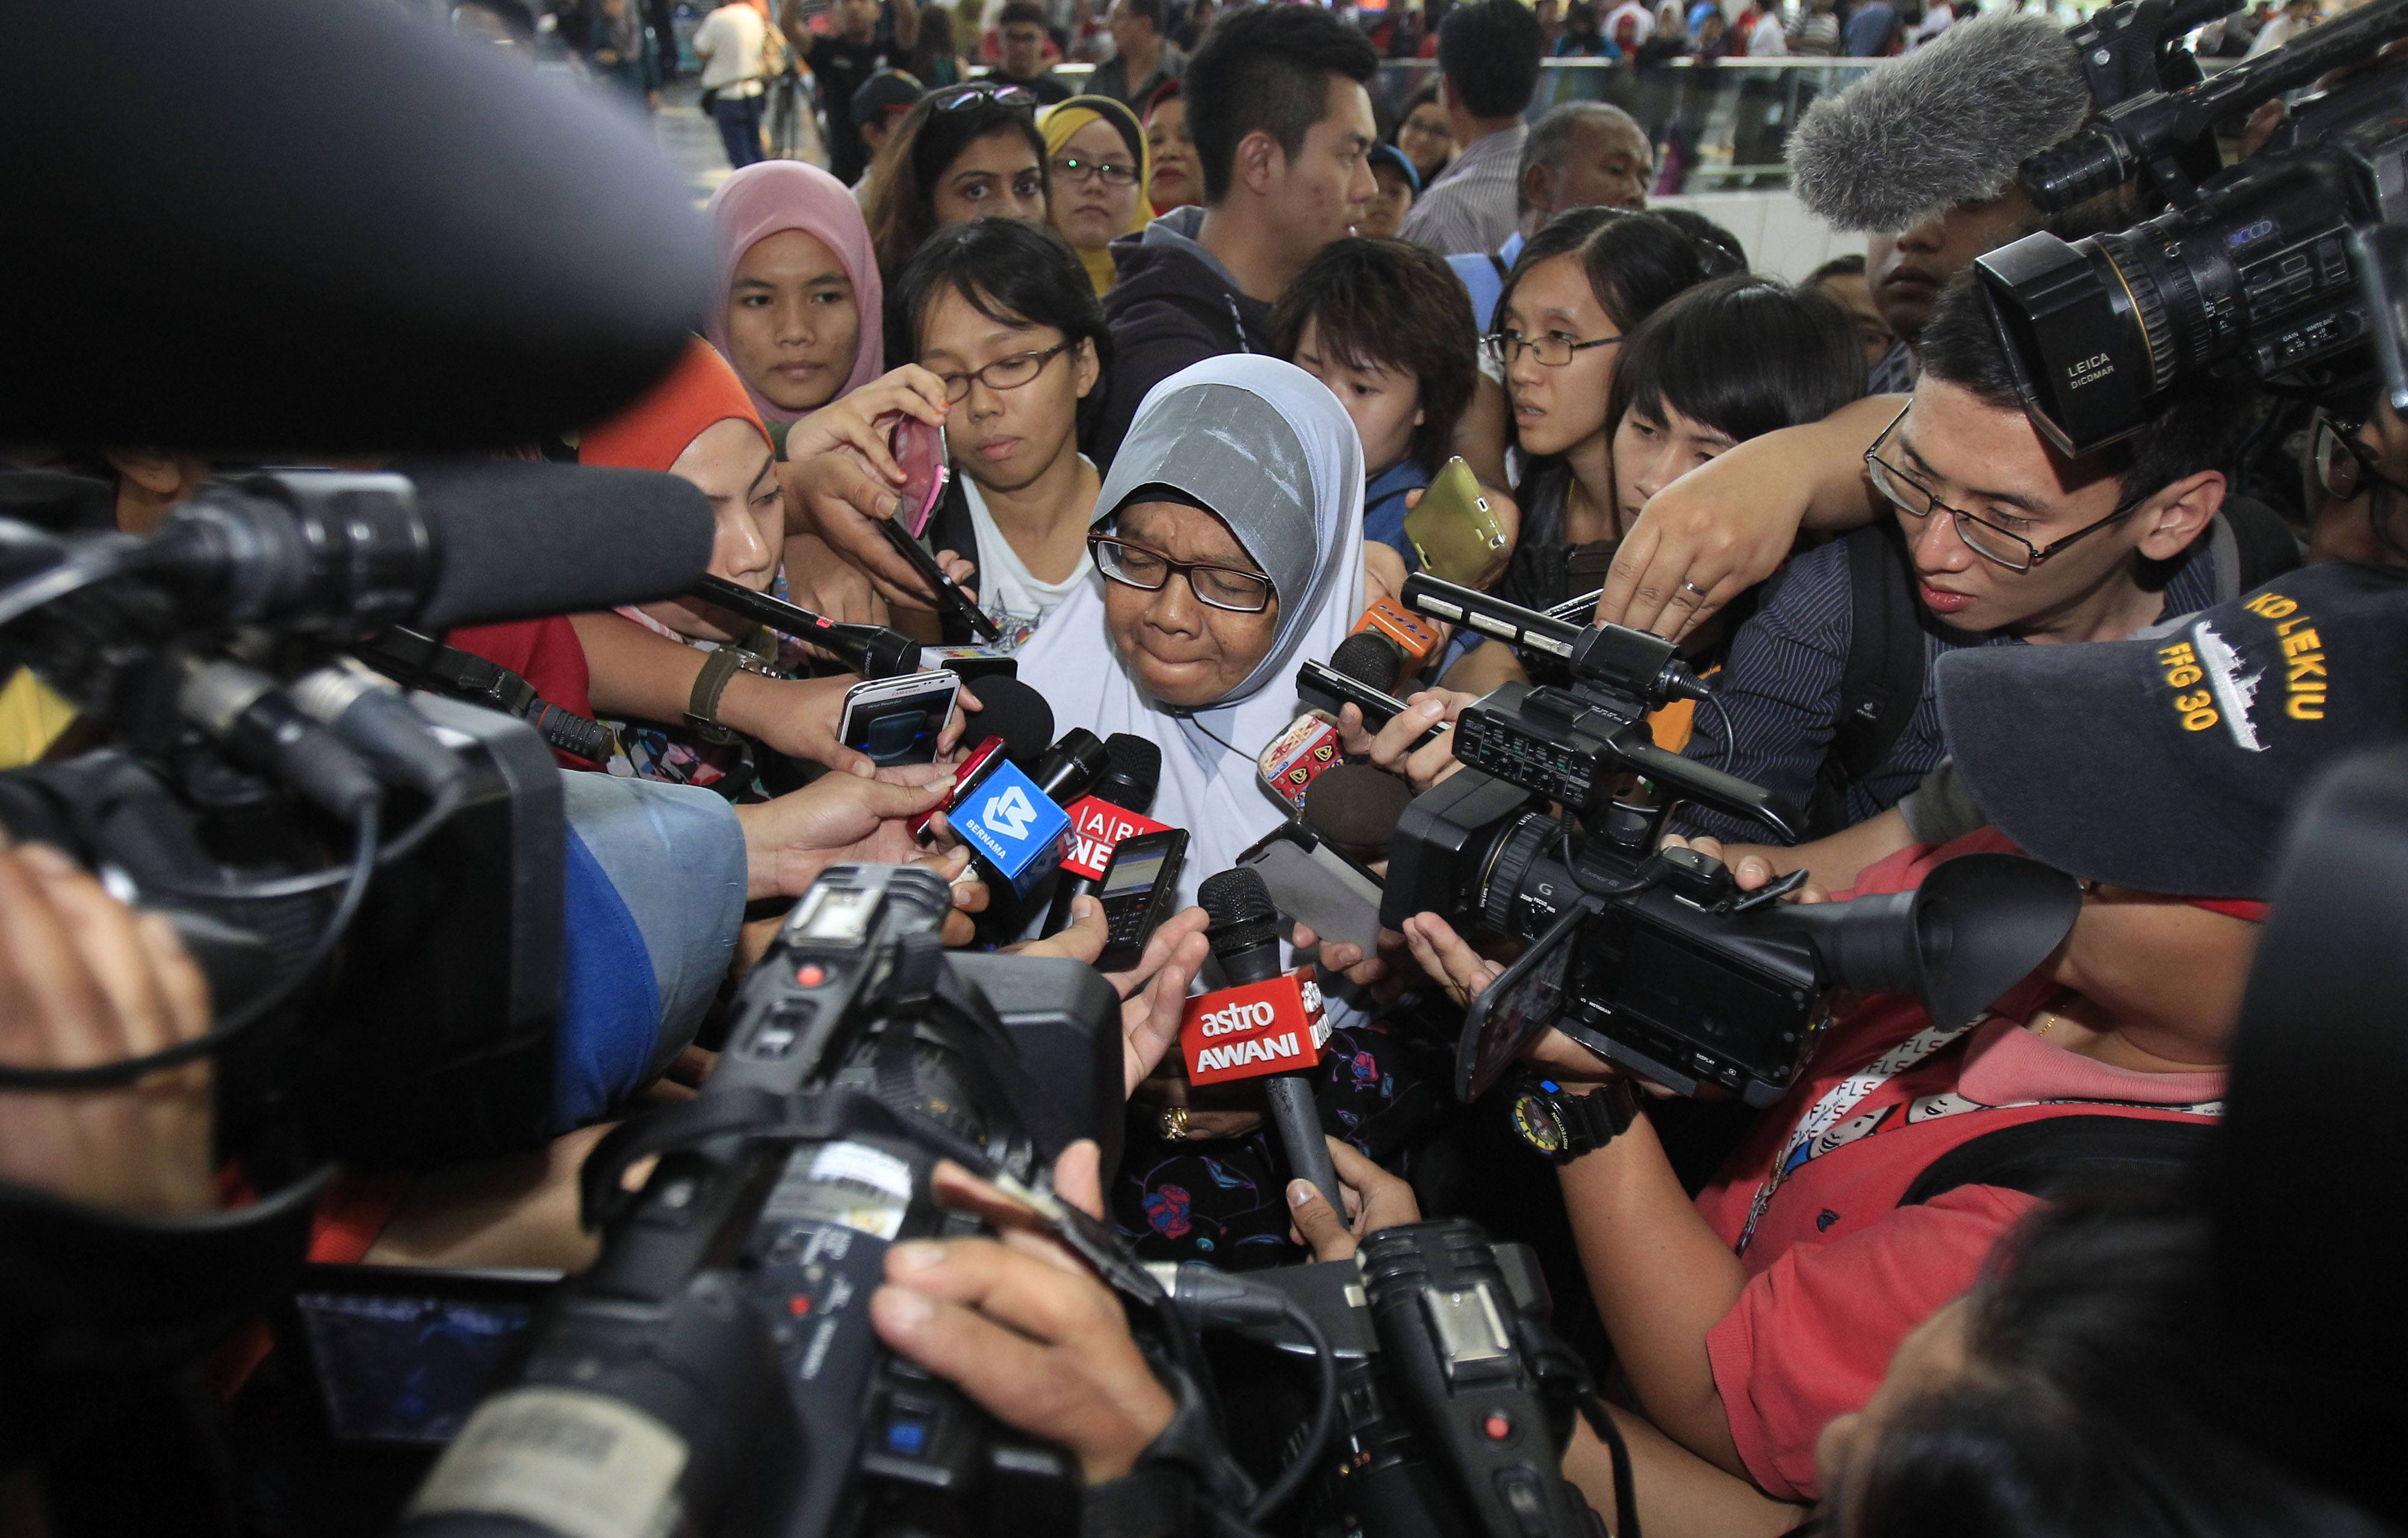 A family member of passengers aboard a missing Malaysia Airlines plane is mobbed by journalists at Kuala Lumpur International Airport in Sepang, outside Kuala Lumpur, Malaysia, Saturday.